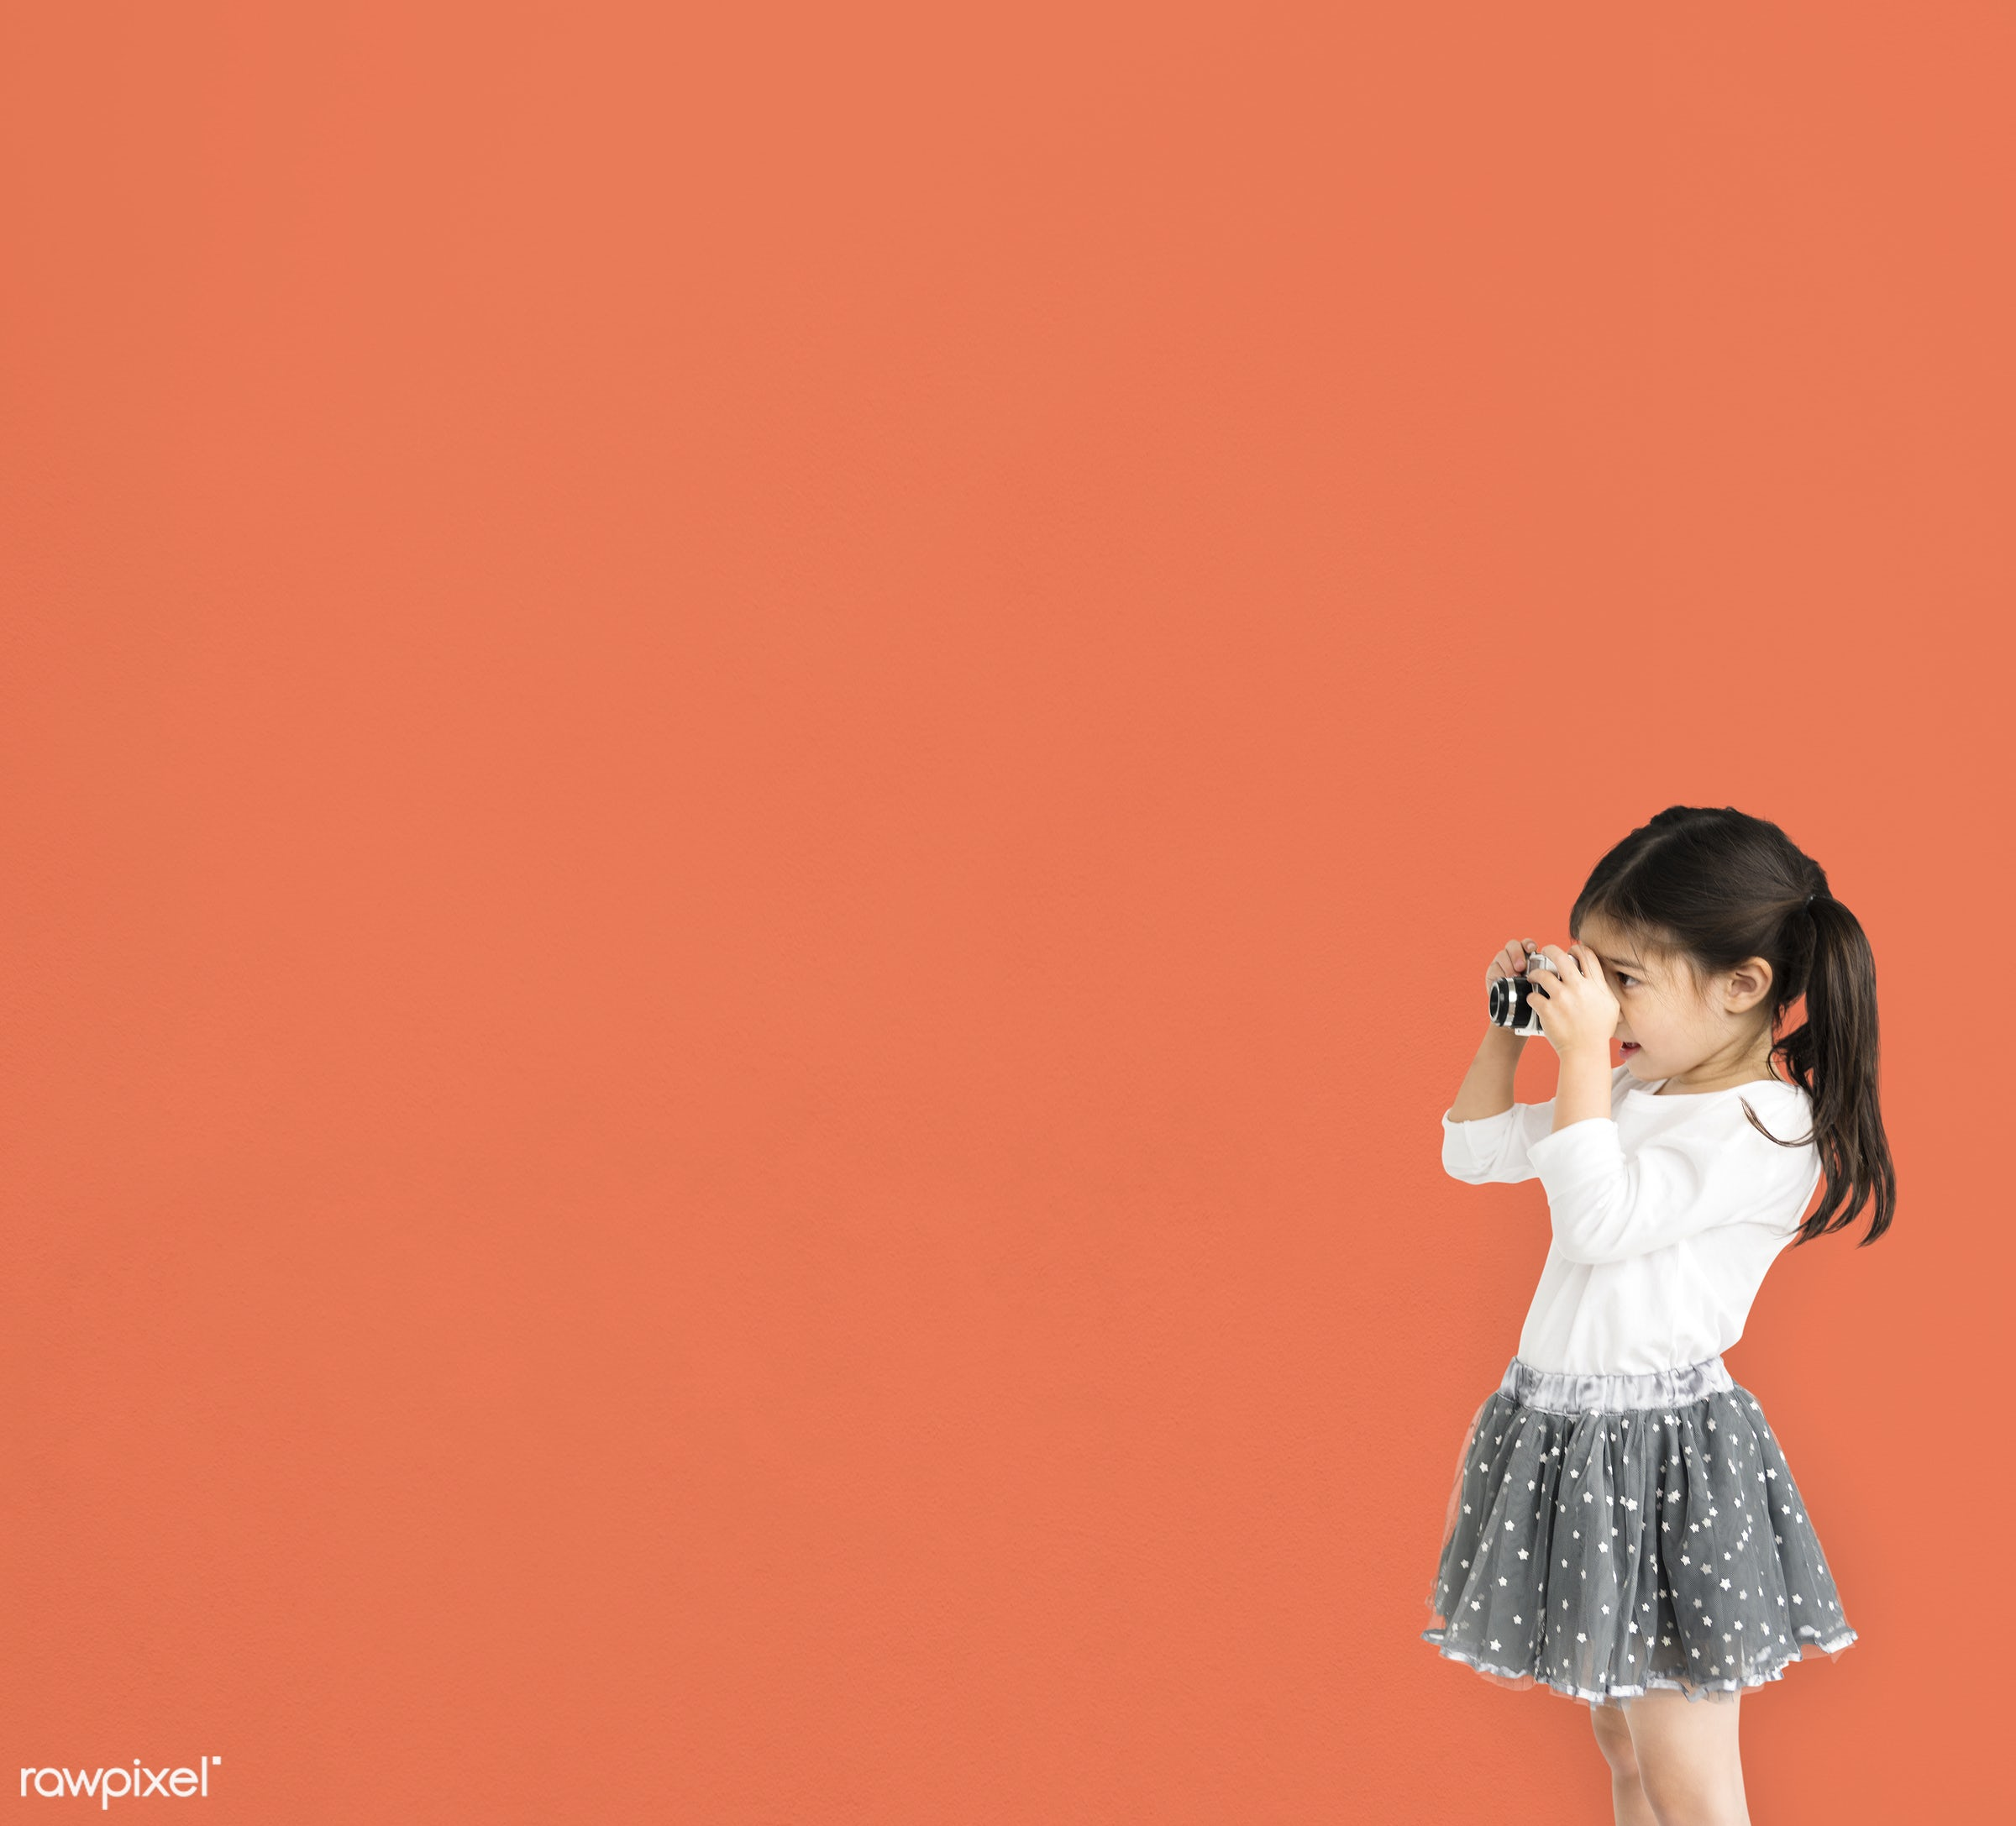 studio, person, innocent, little, people, kid, curious, solo, search, childhood, alone, isolated, orange, leisure, youth,...